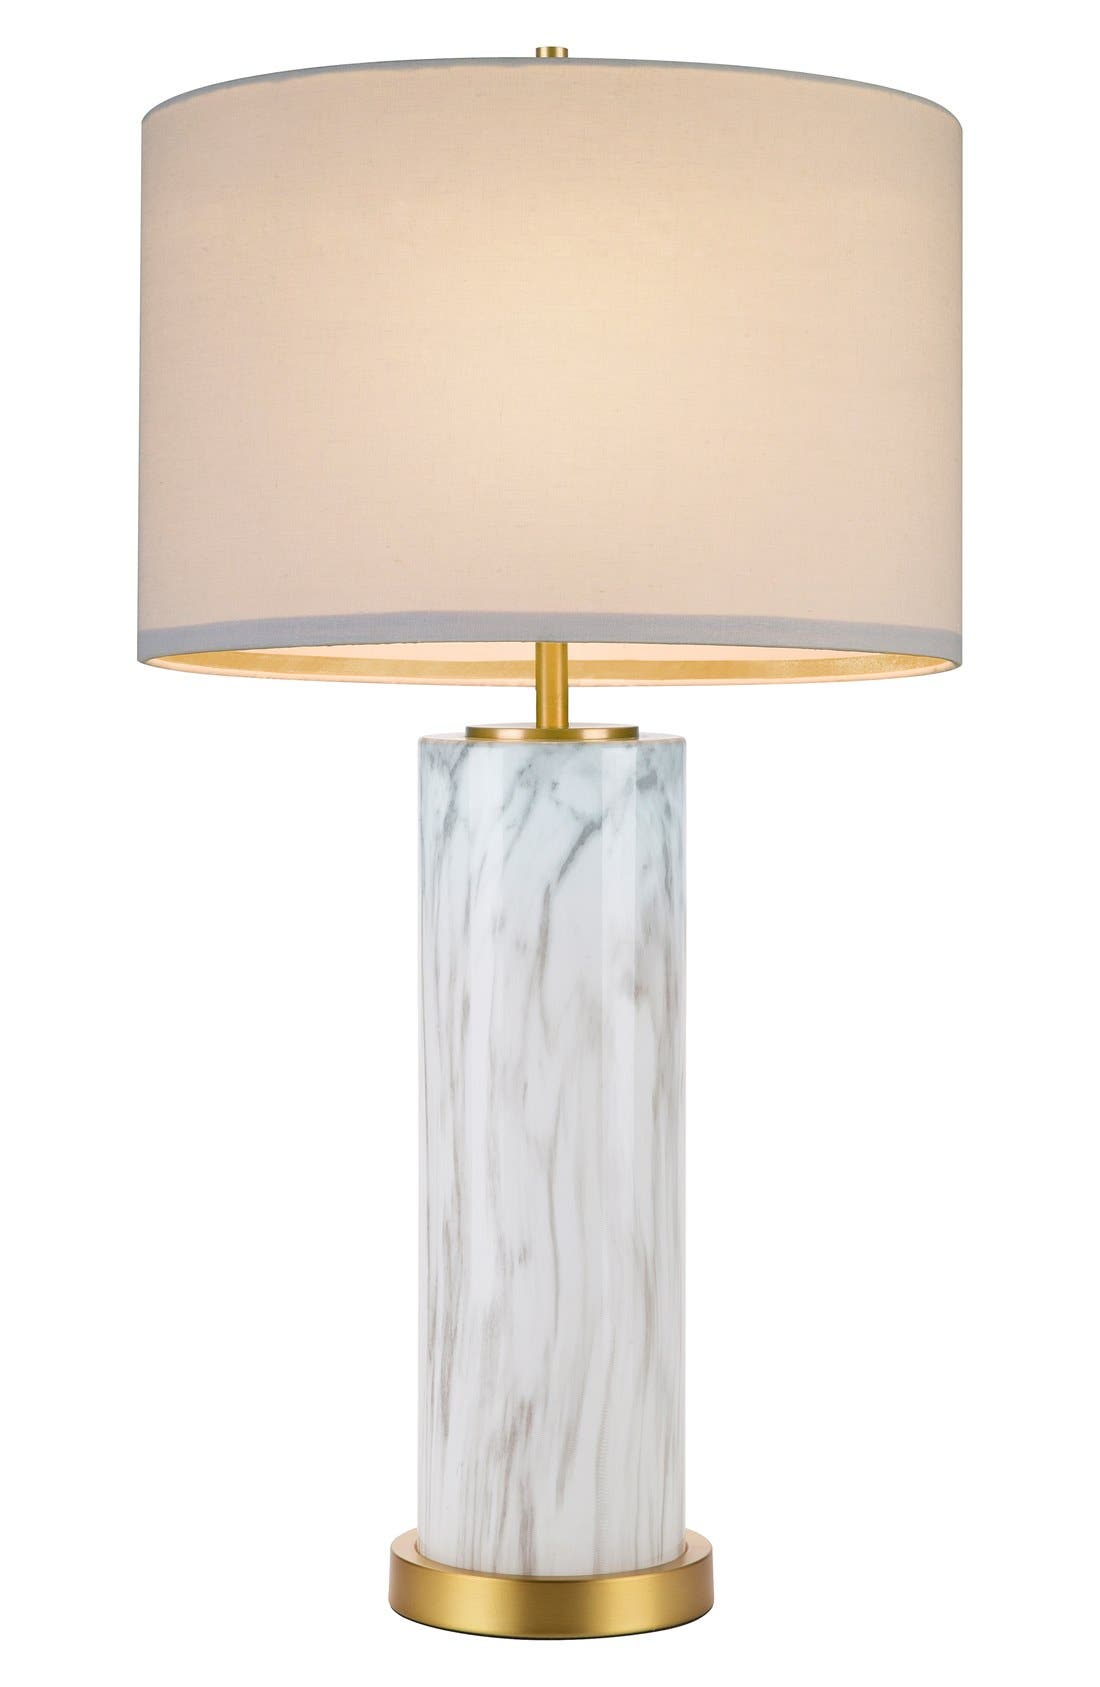 CUPCAKES AND CASHMERE Marble Column Table Lamp